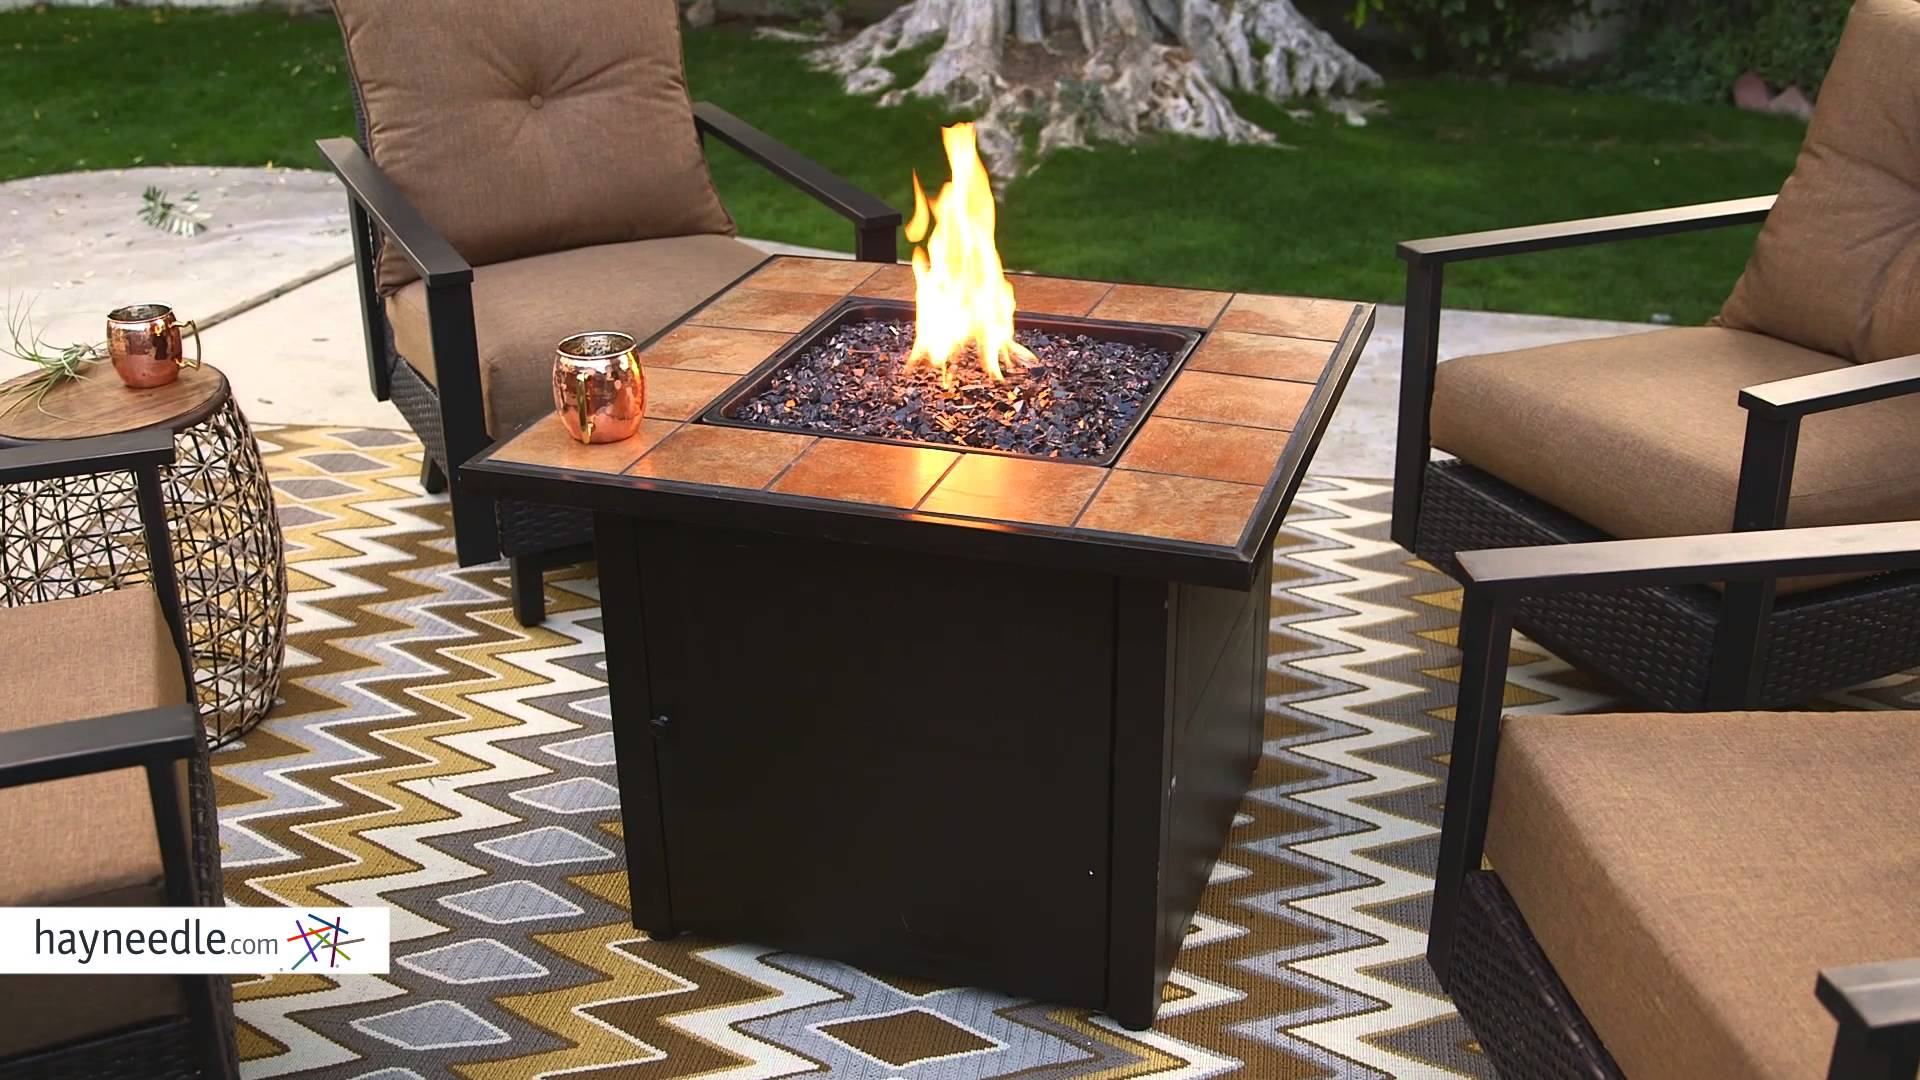 Uniflame Fire Pit 1782 throughout proportions 1920 X 1080